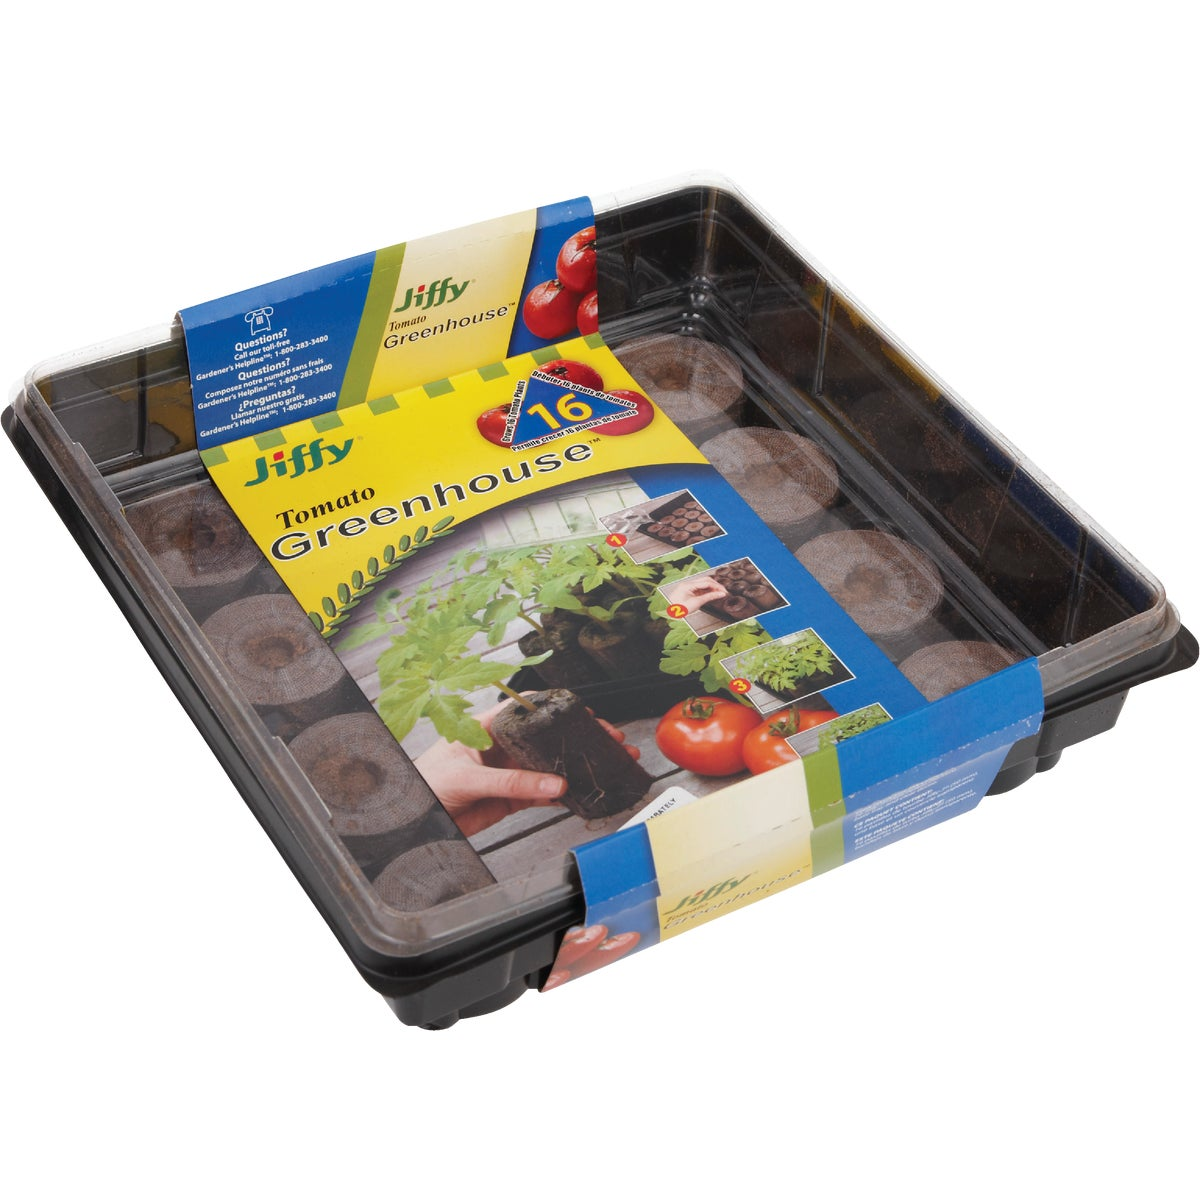 16 PELLET LG GREENHOUSE - J616 by Plantation Products